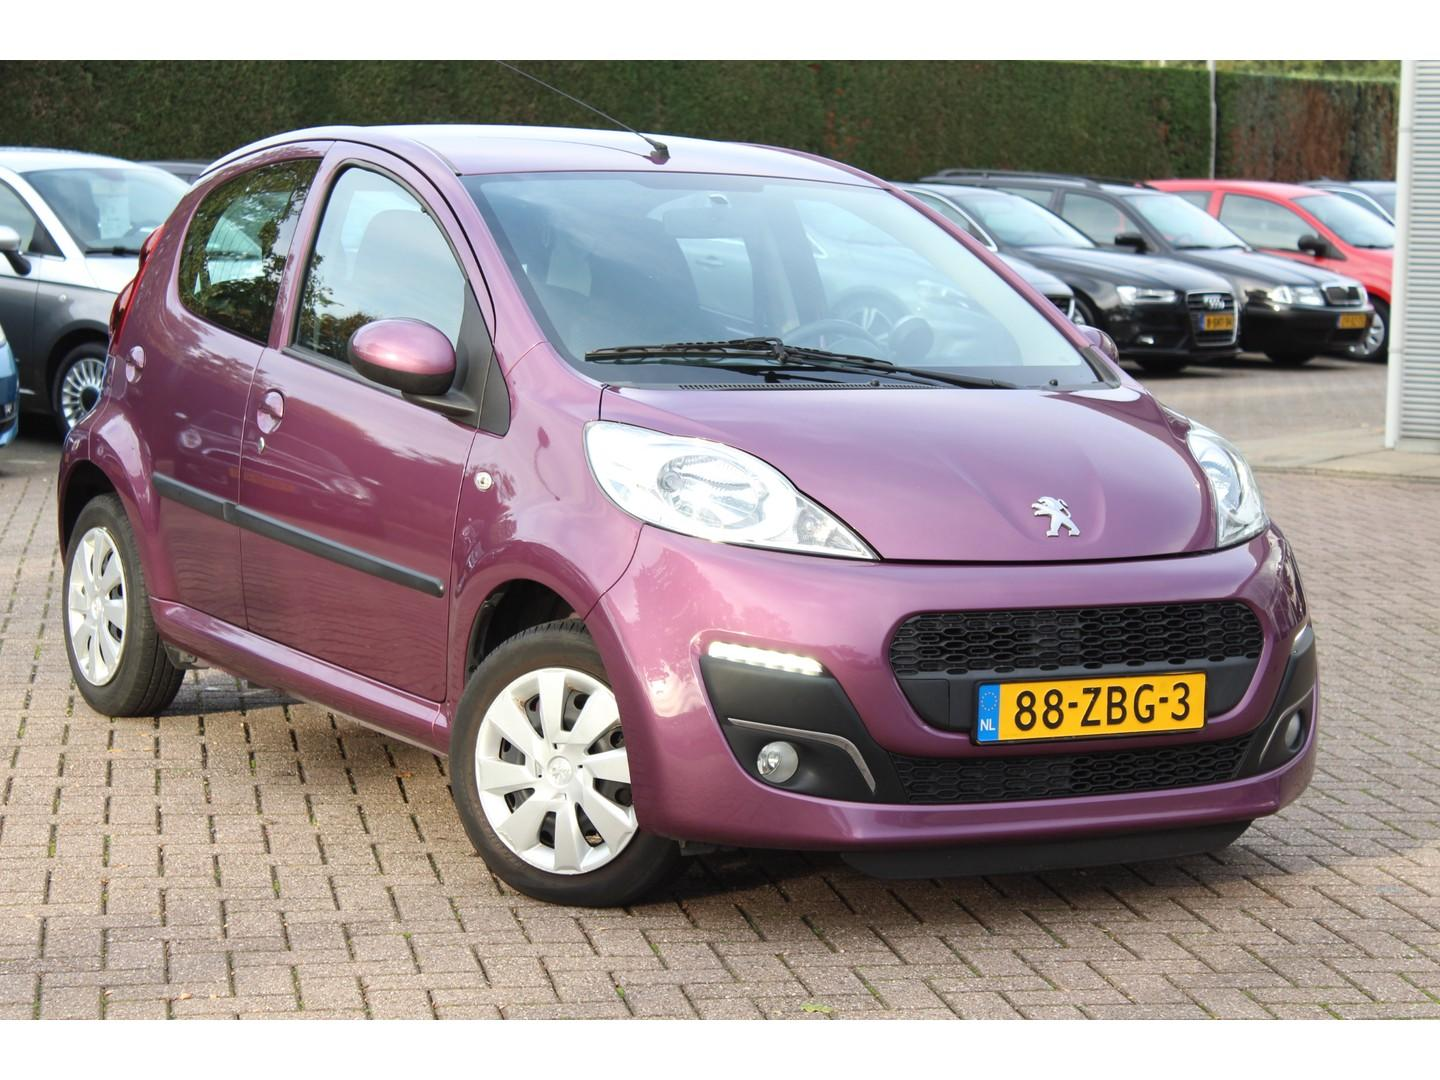 Peugeot 107 1.0 envy 5drs / led verlichting / airco / 72.149 km!